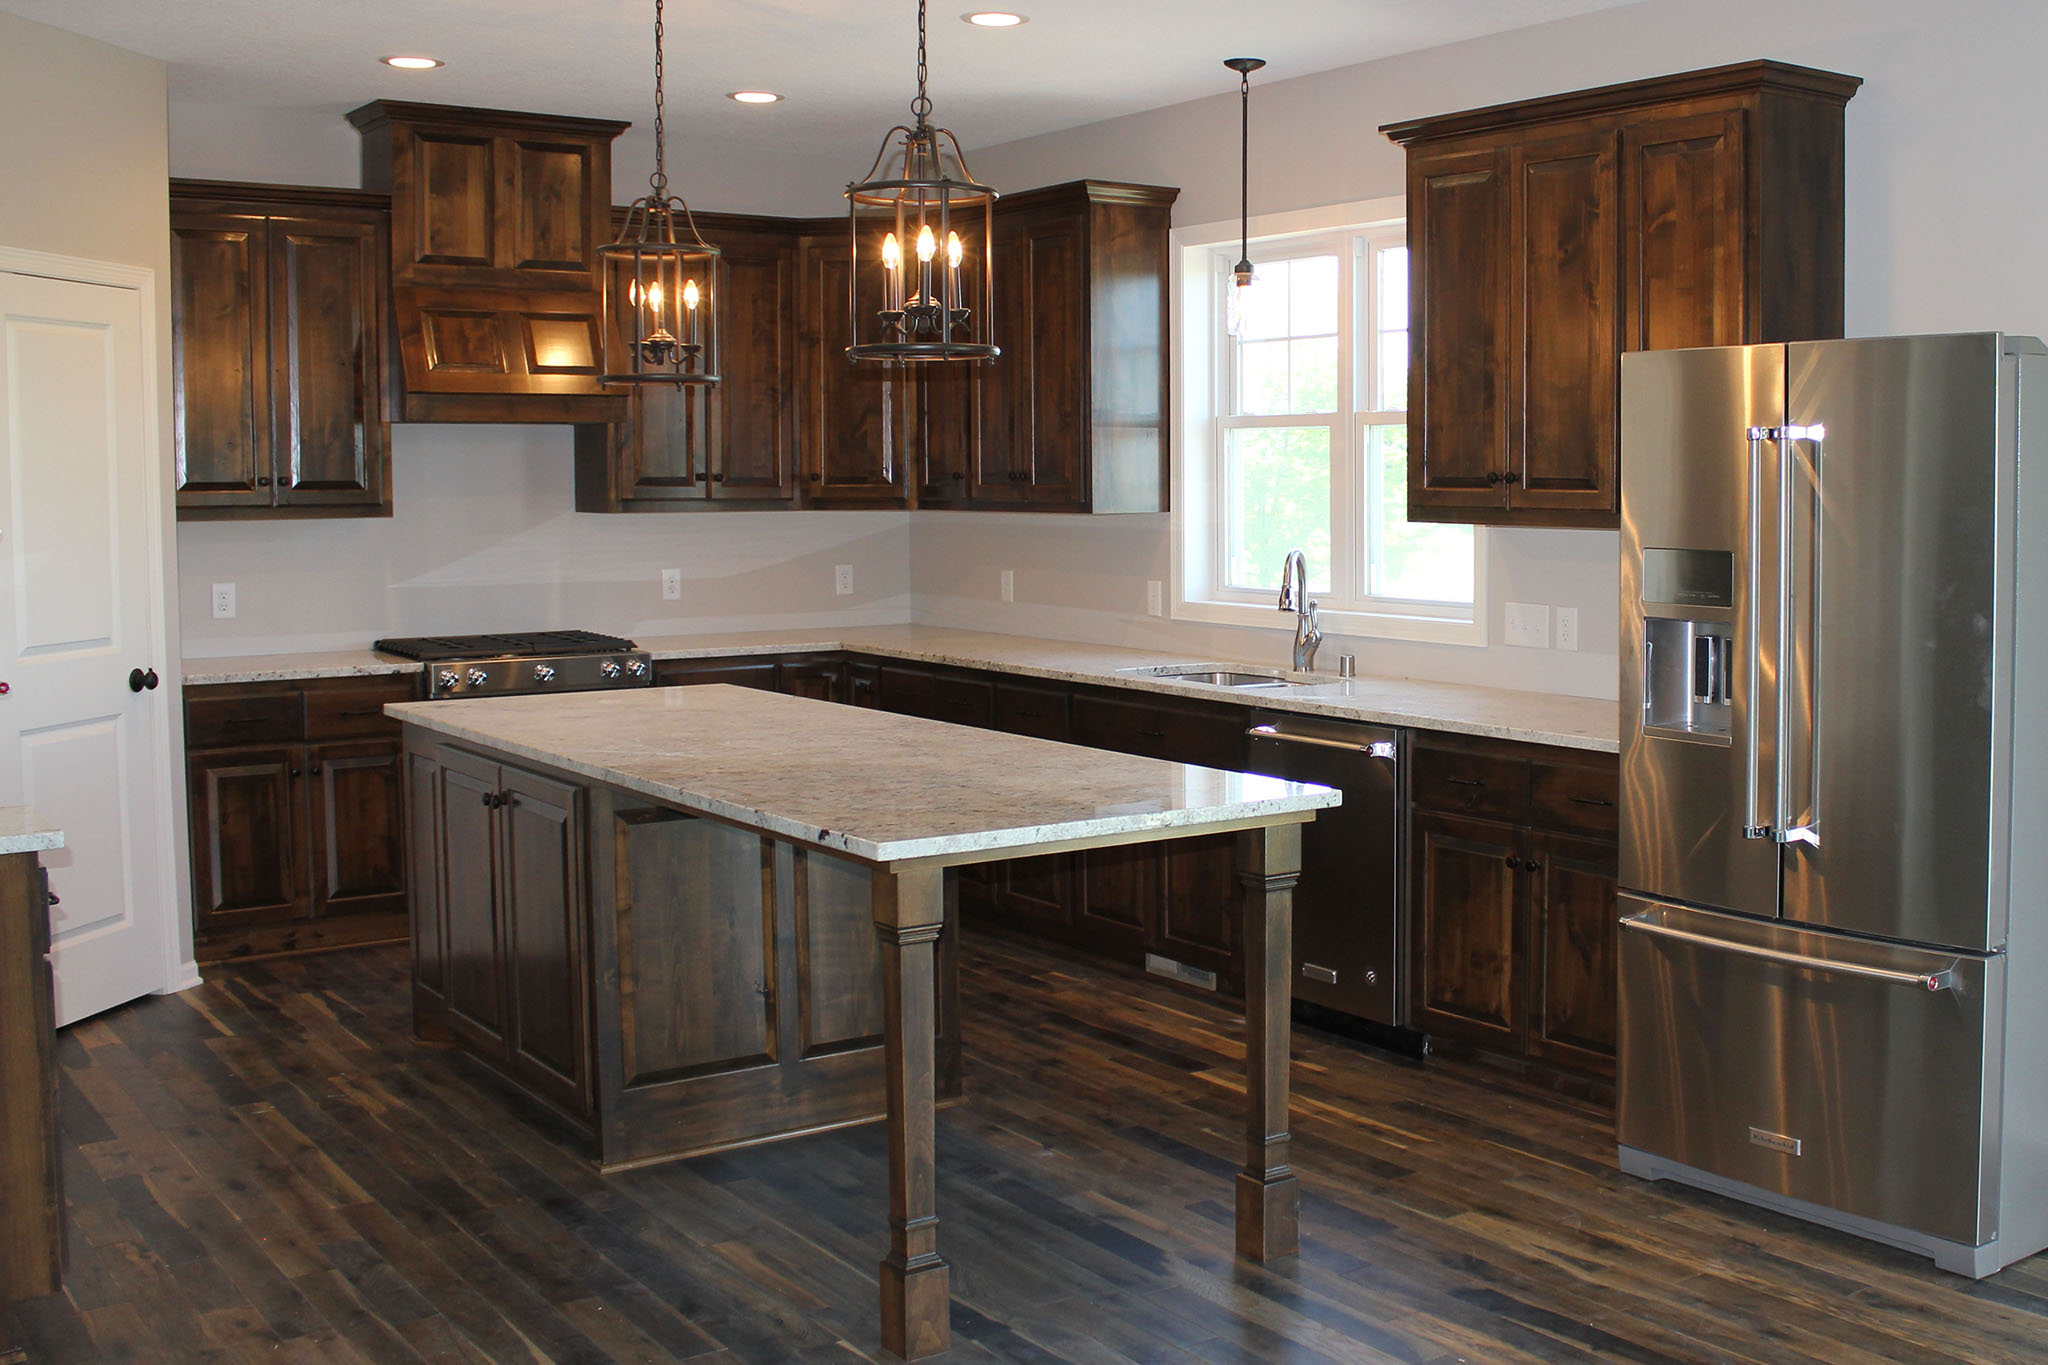 Kitchen island table with end seating area, stained poplar cabinetry and granite countertops